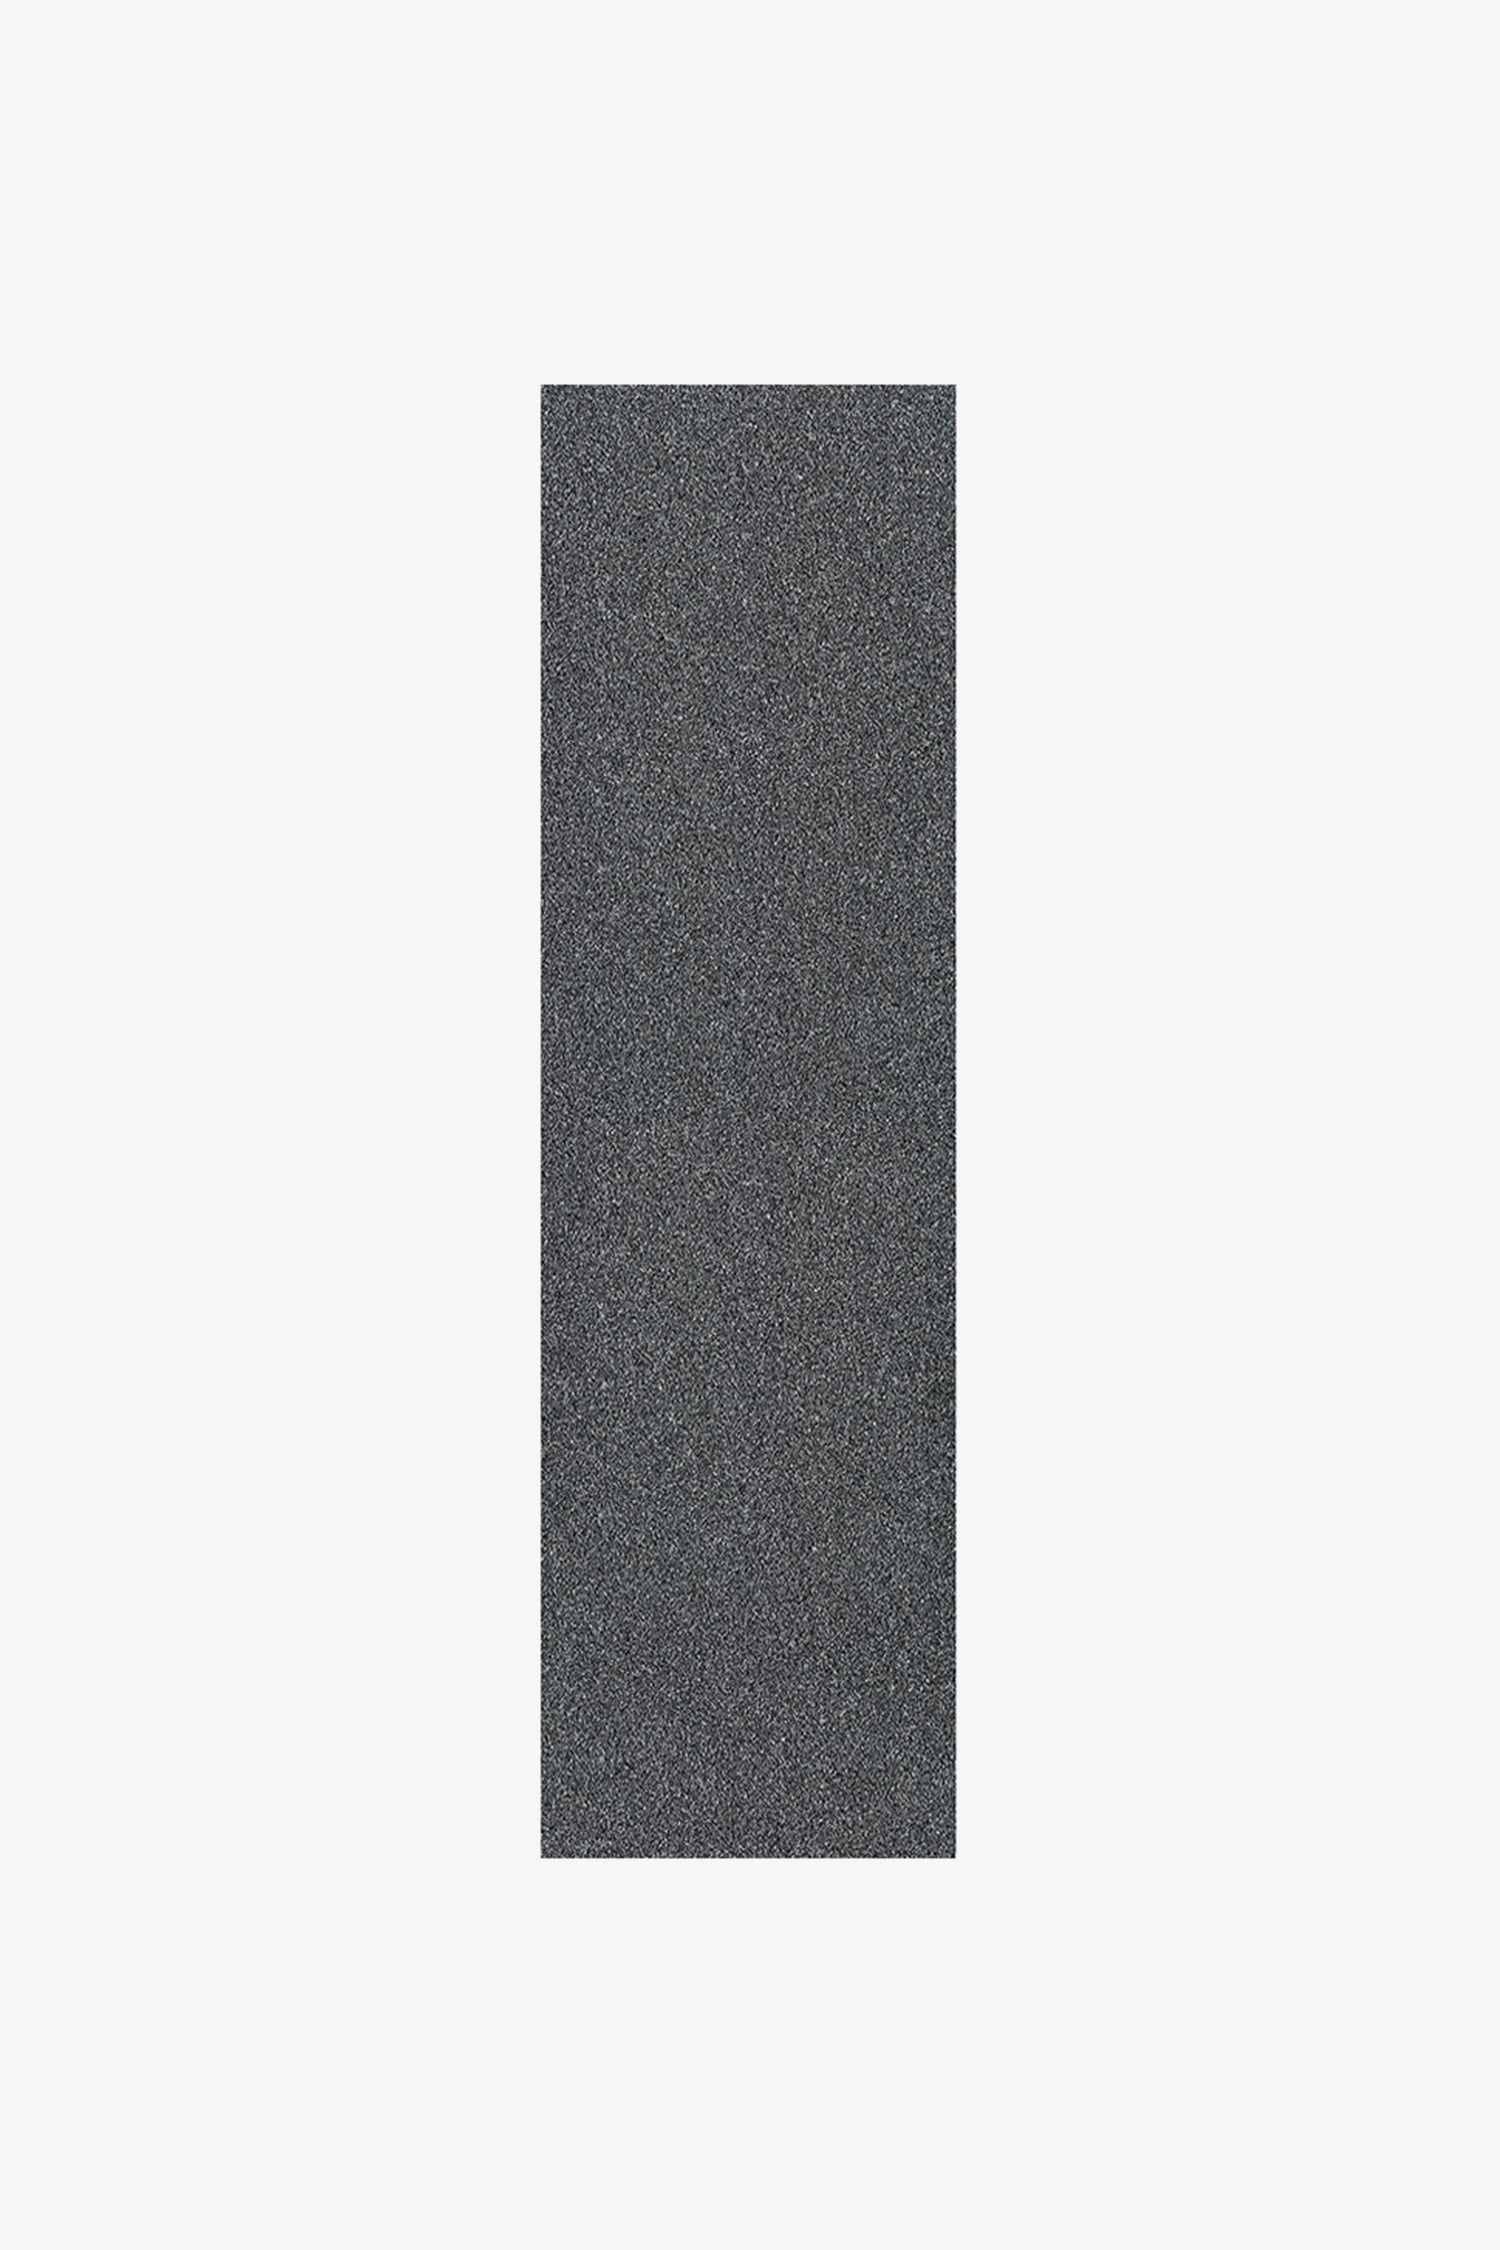 Selectshop FRAME - MOB GRIP Black Skateboard Griptape Sheet Skateboard Parts Dubai